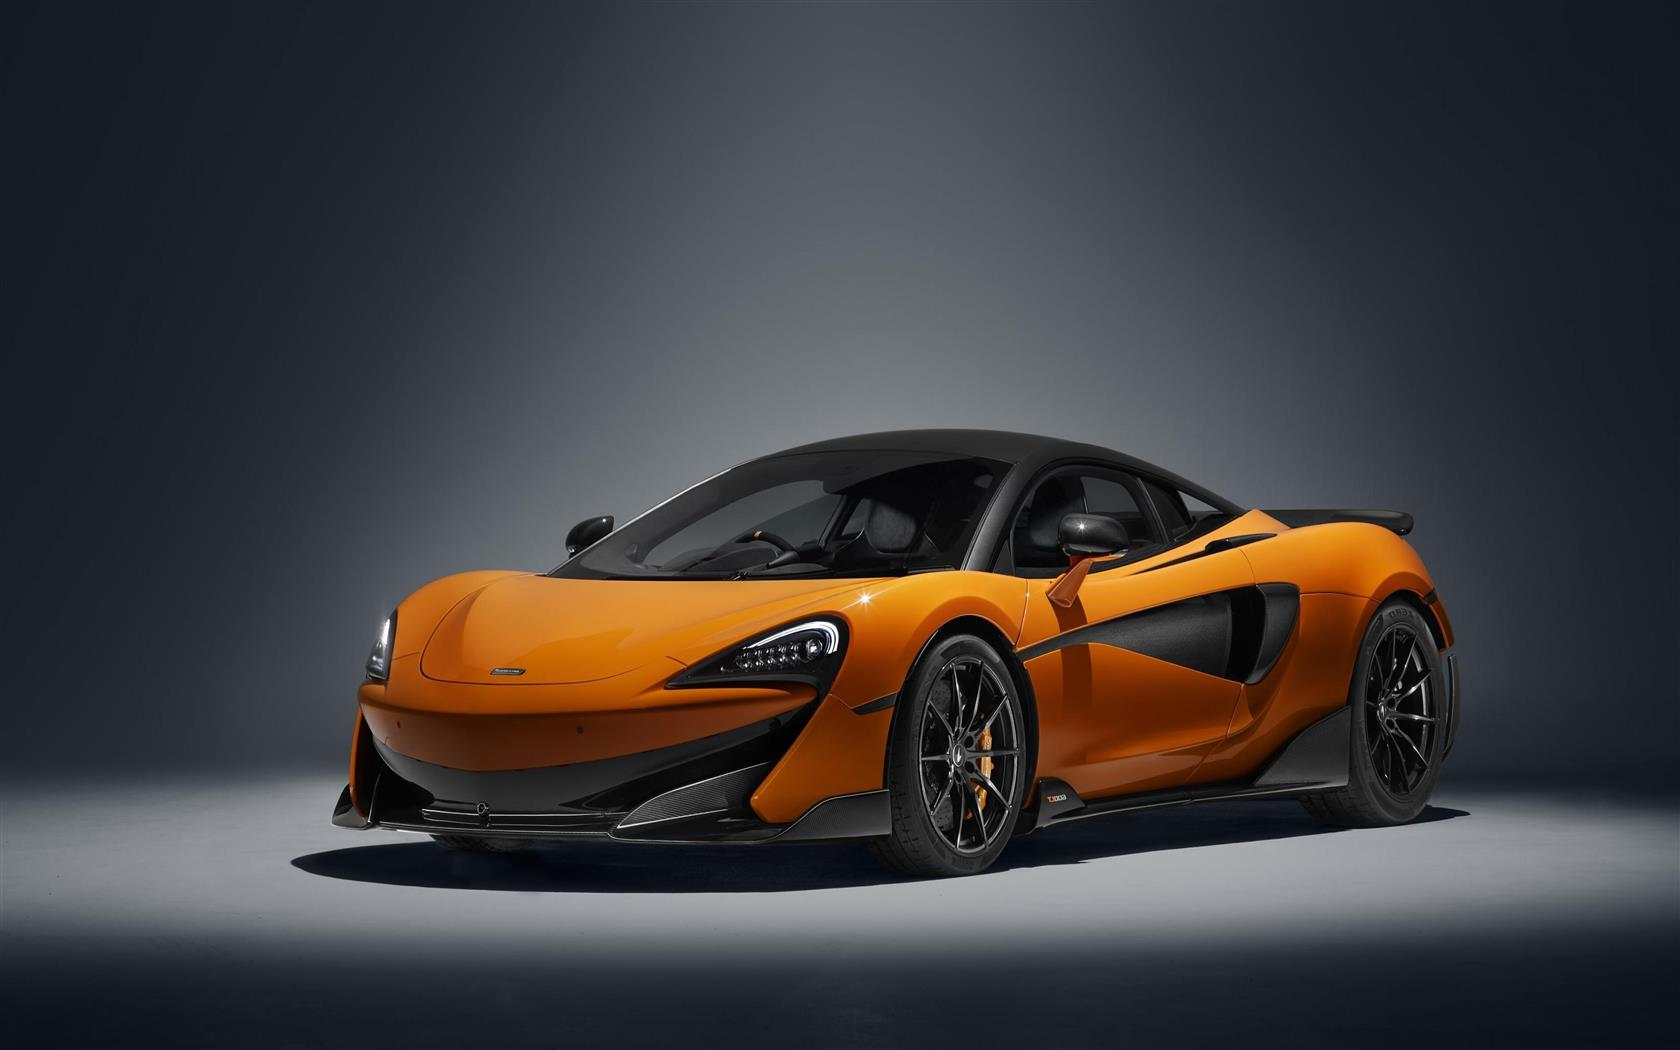 1680x1050 4K Wallpaper of 2019 McLaren 600LT Race Track Car